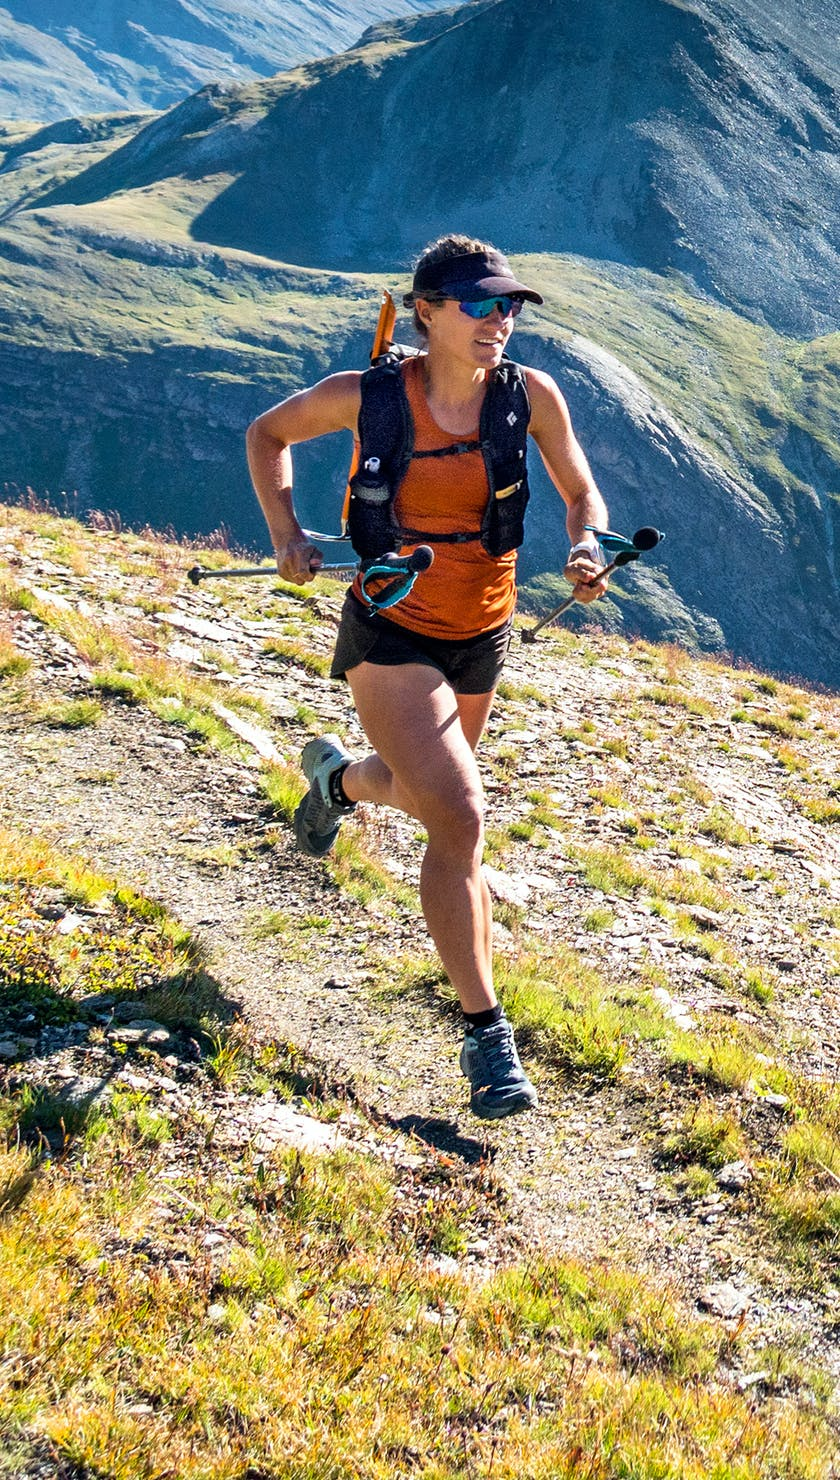 BD Athlete Hillary Gerardi trail running